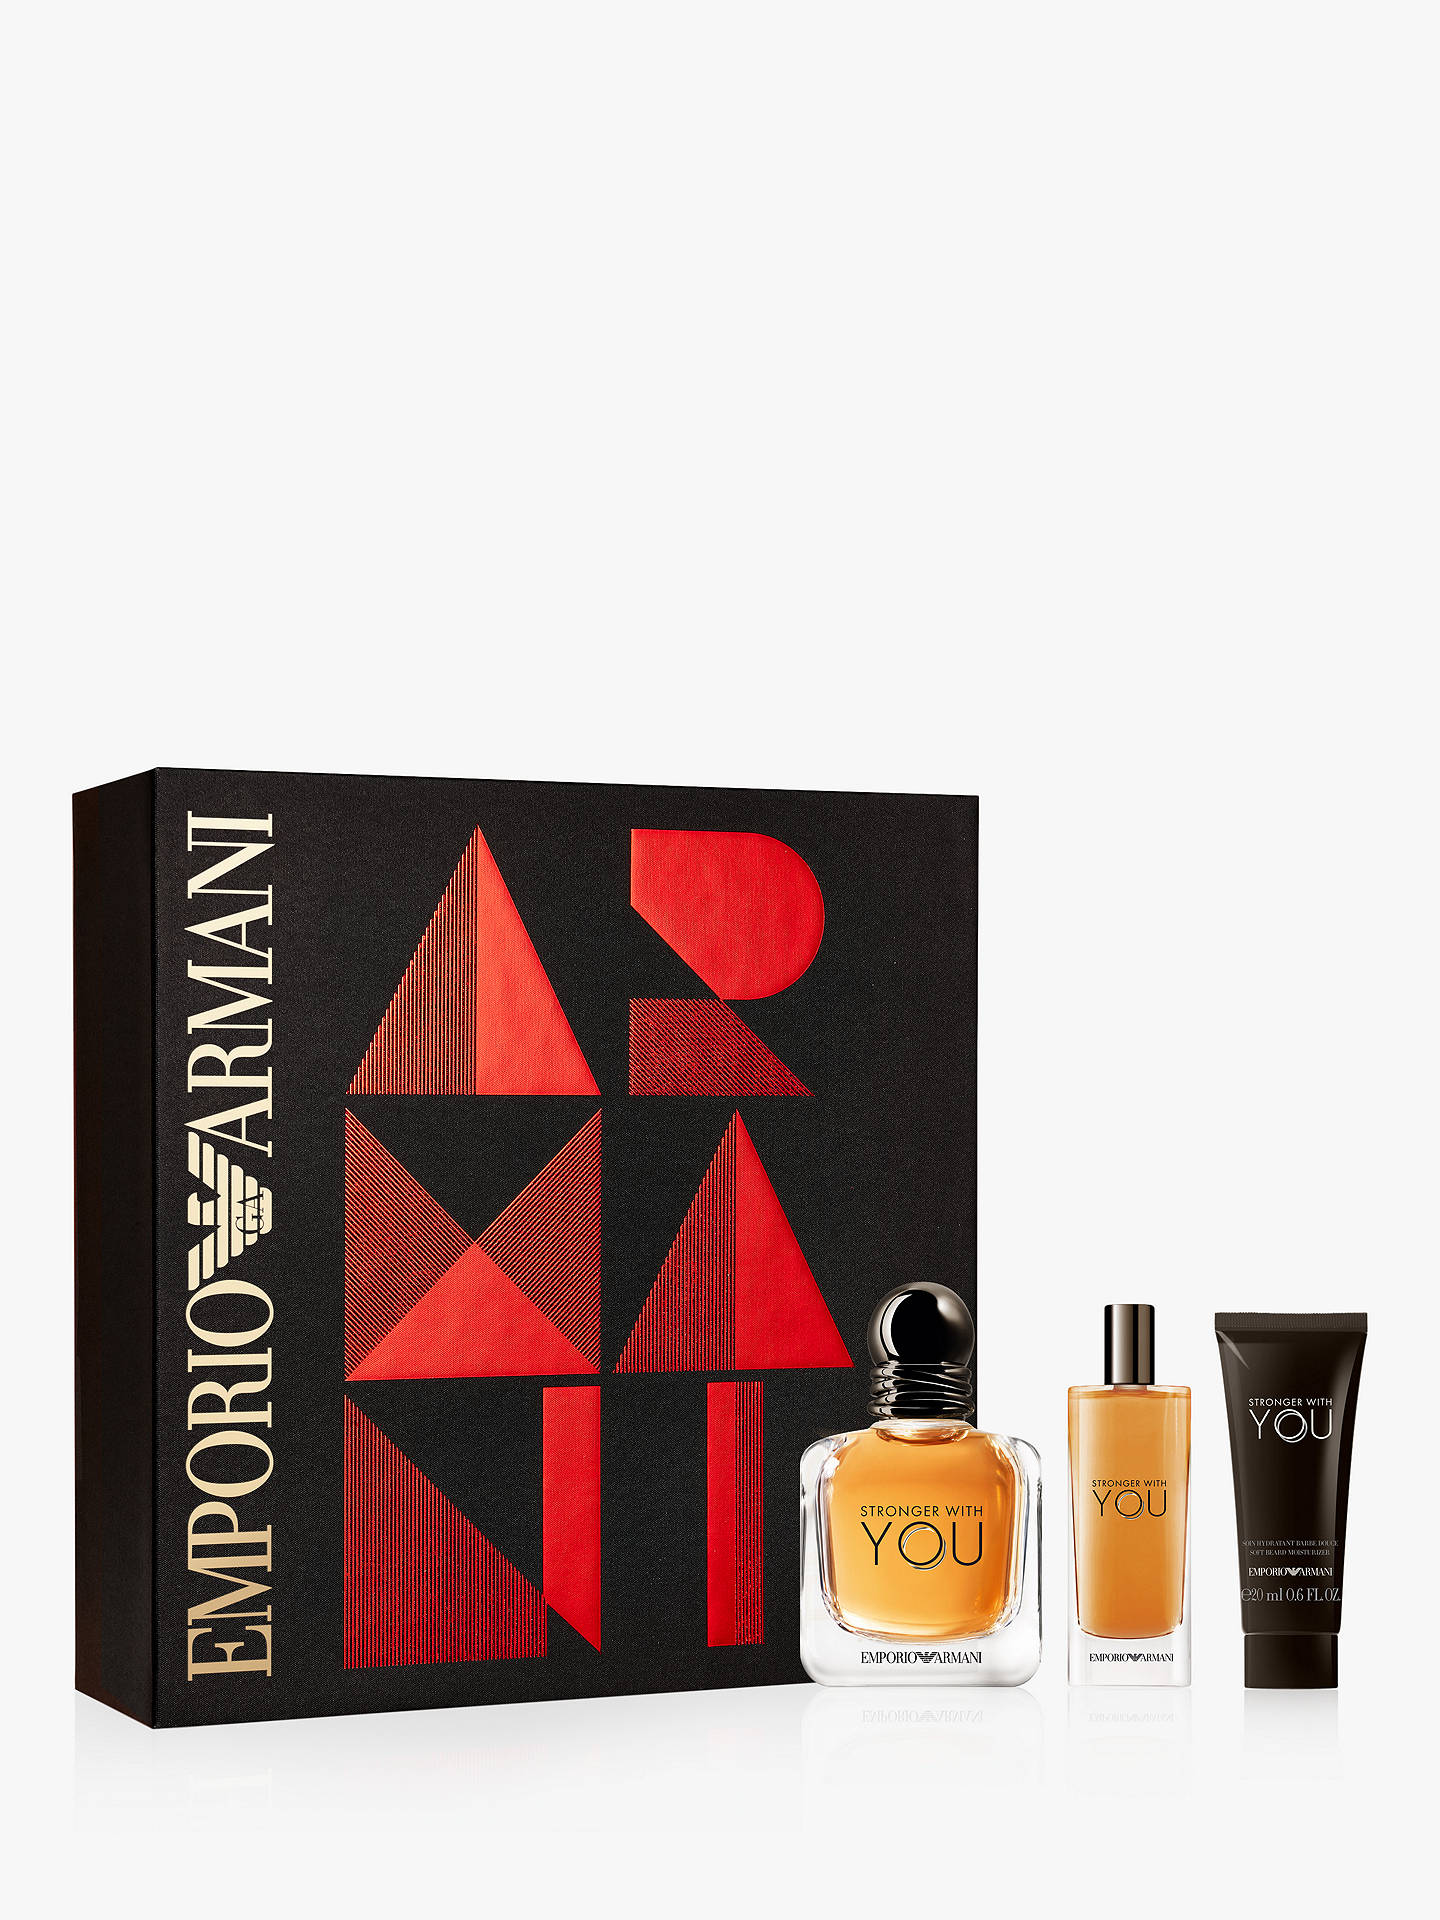 69ca4a3556 Emporio Armani Stronger with You Eau de Toilette 50ml Gift Set at ...